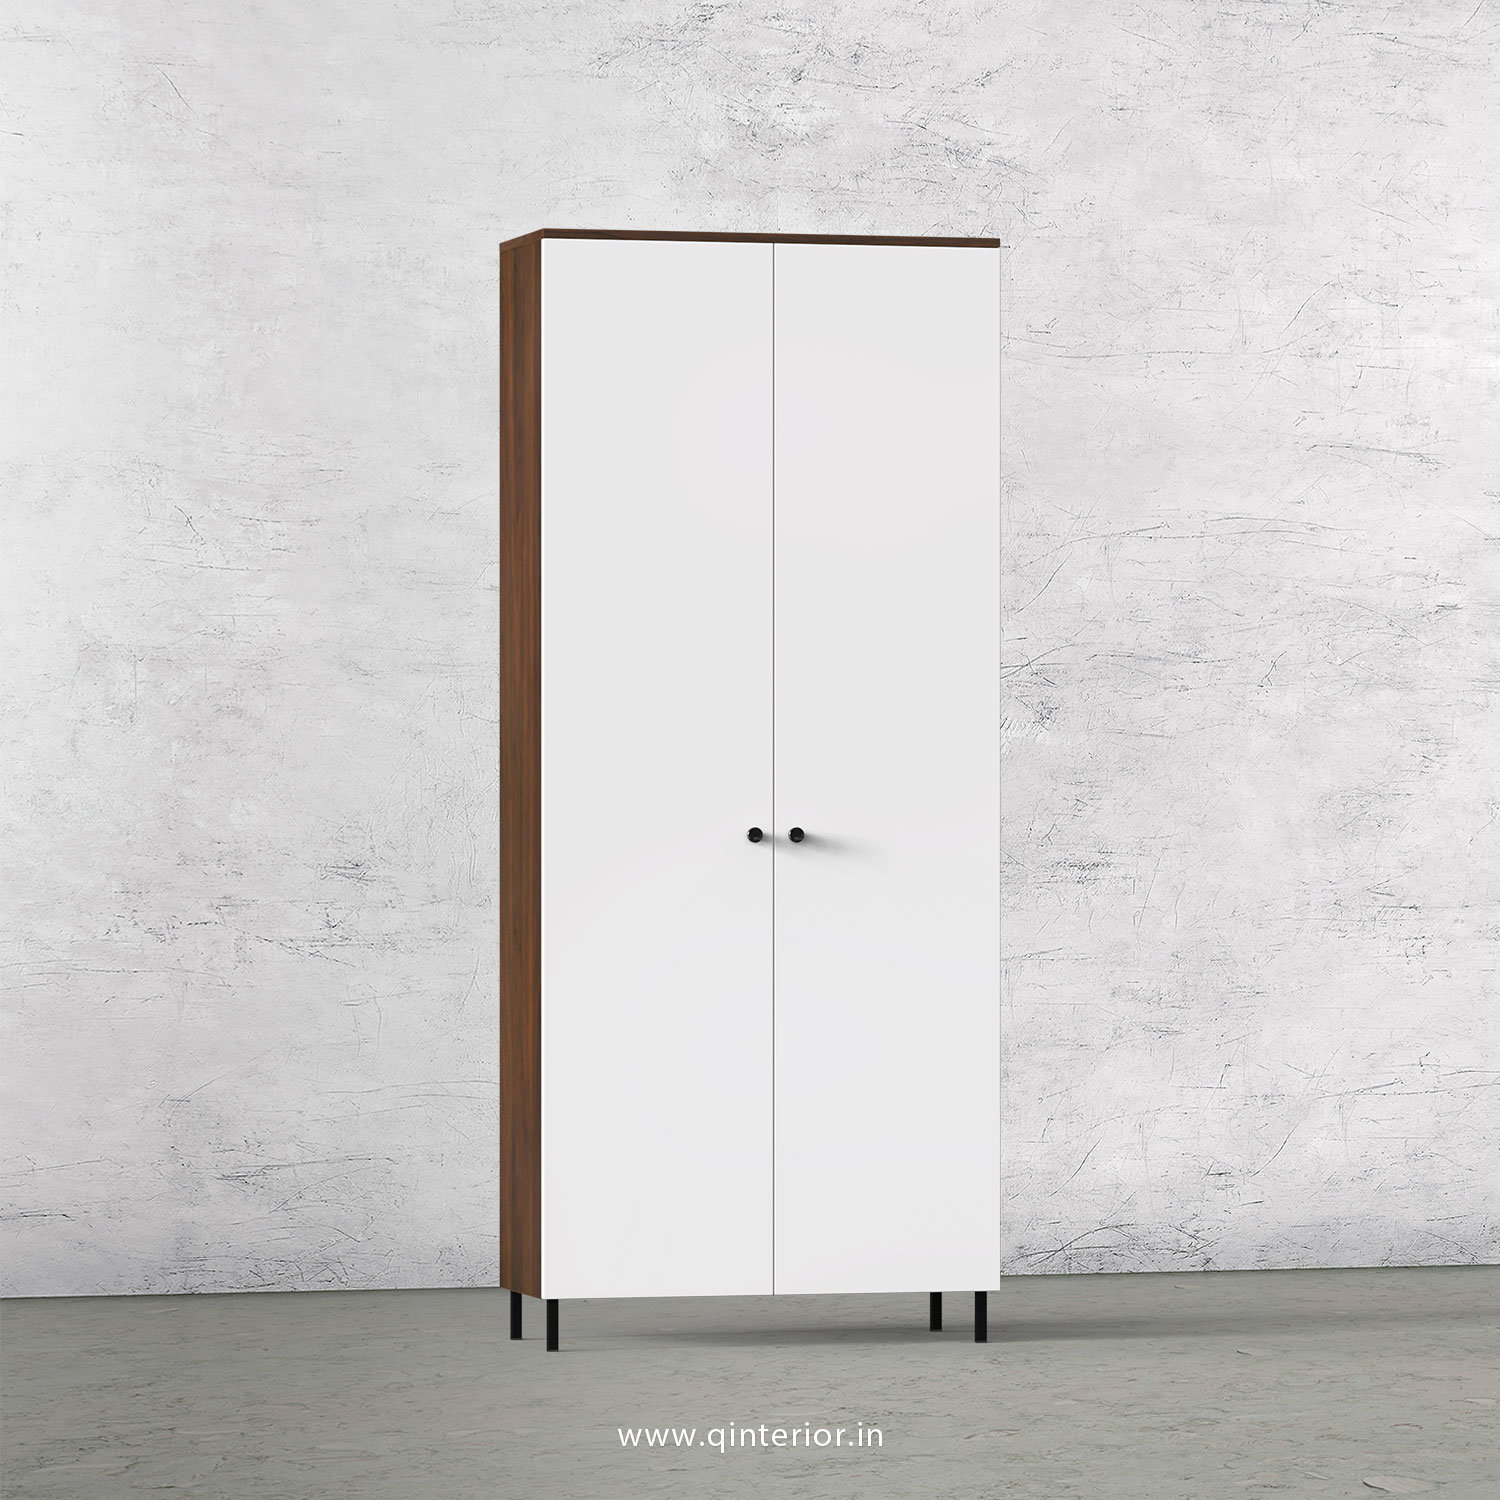 Lambent 2 Door Wardrobe in Walnut and White Finish – DWRD001 C18